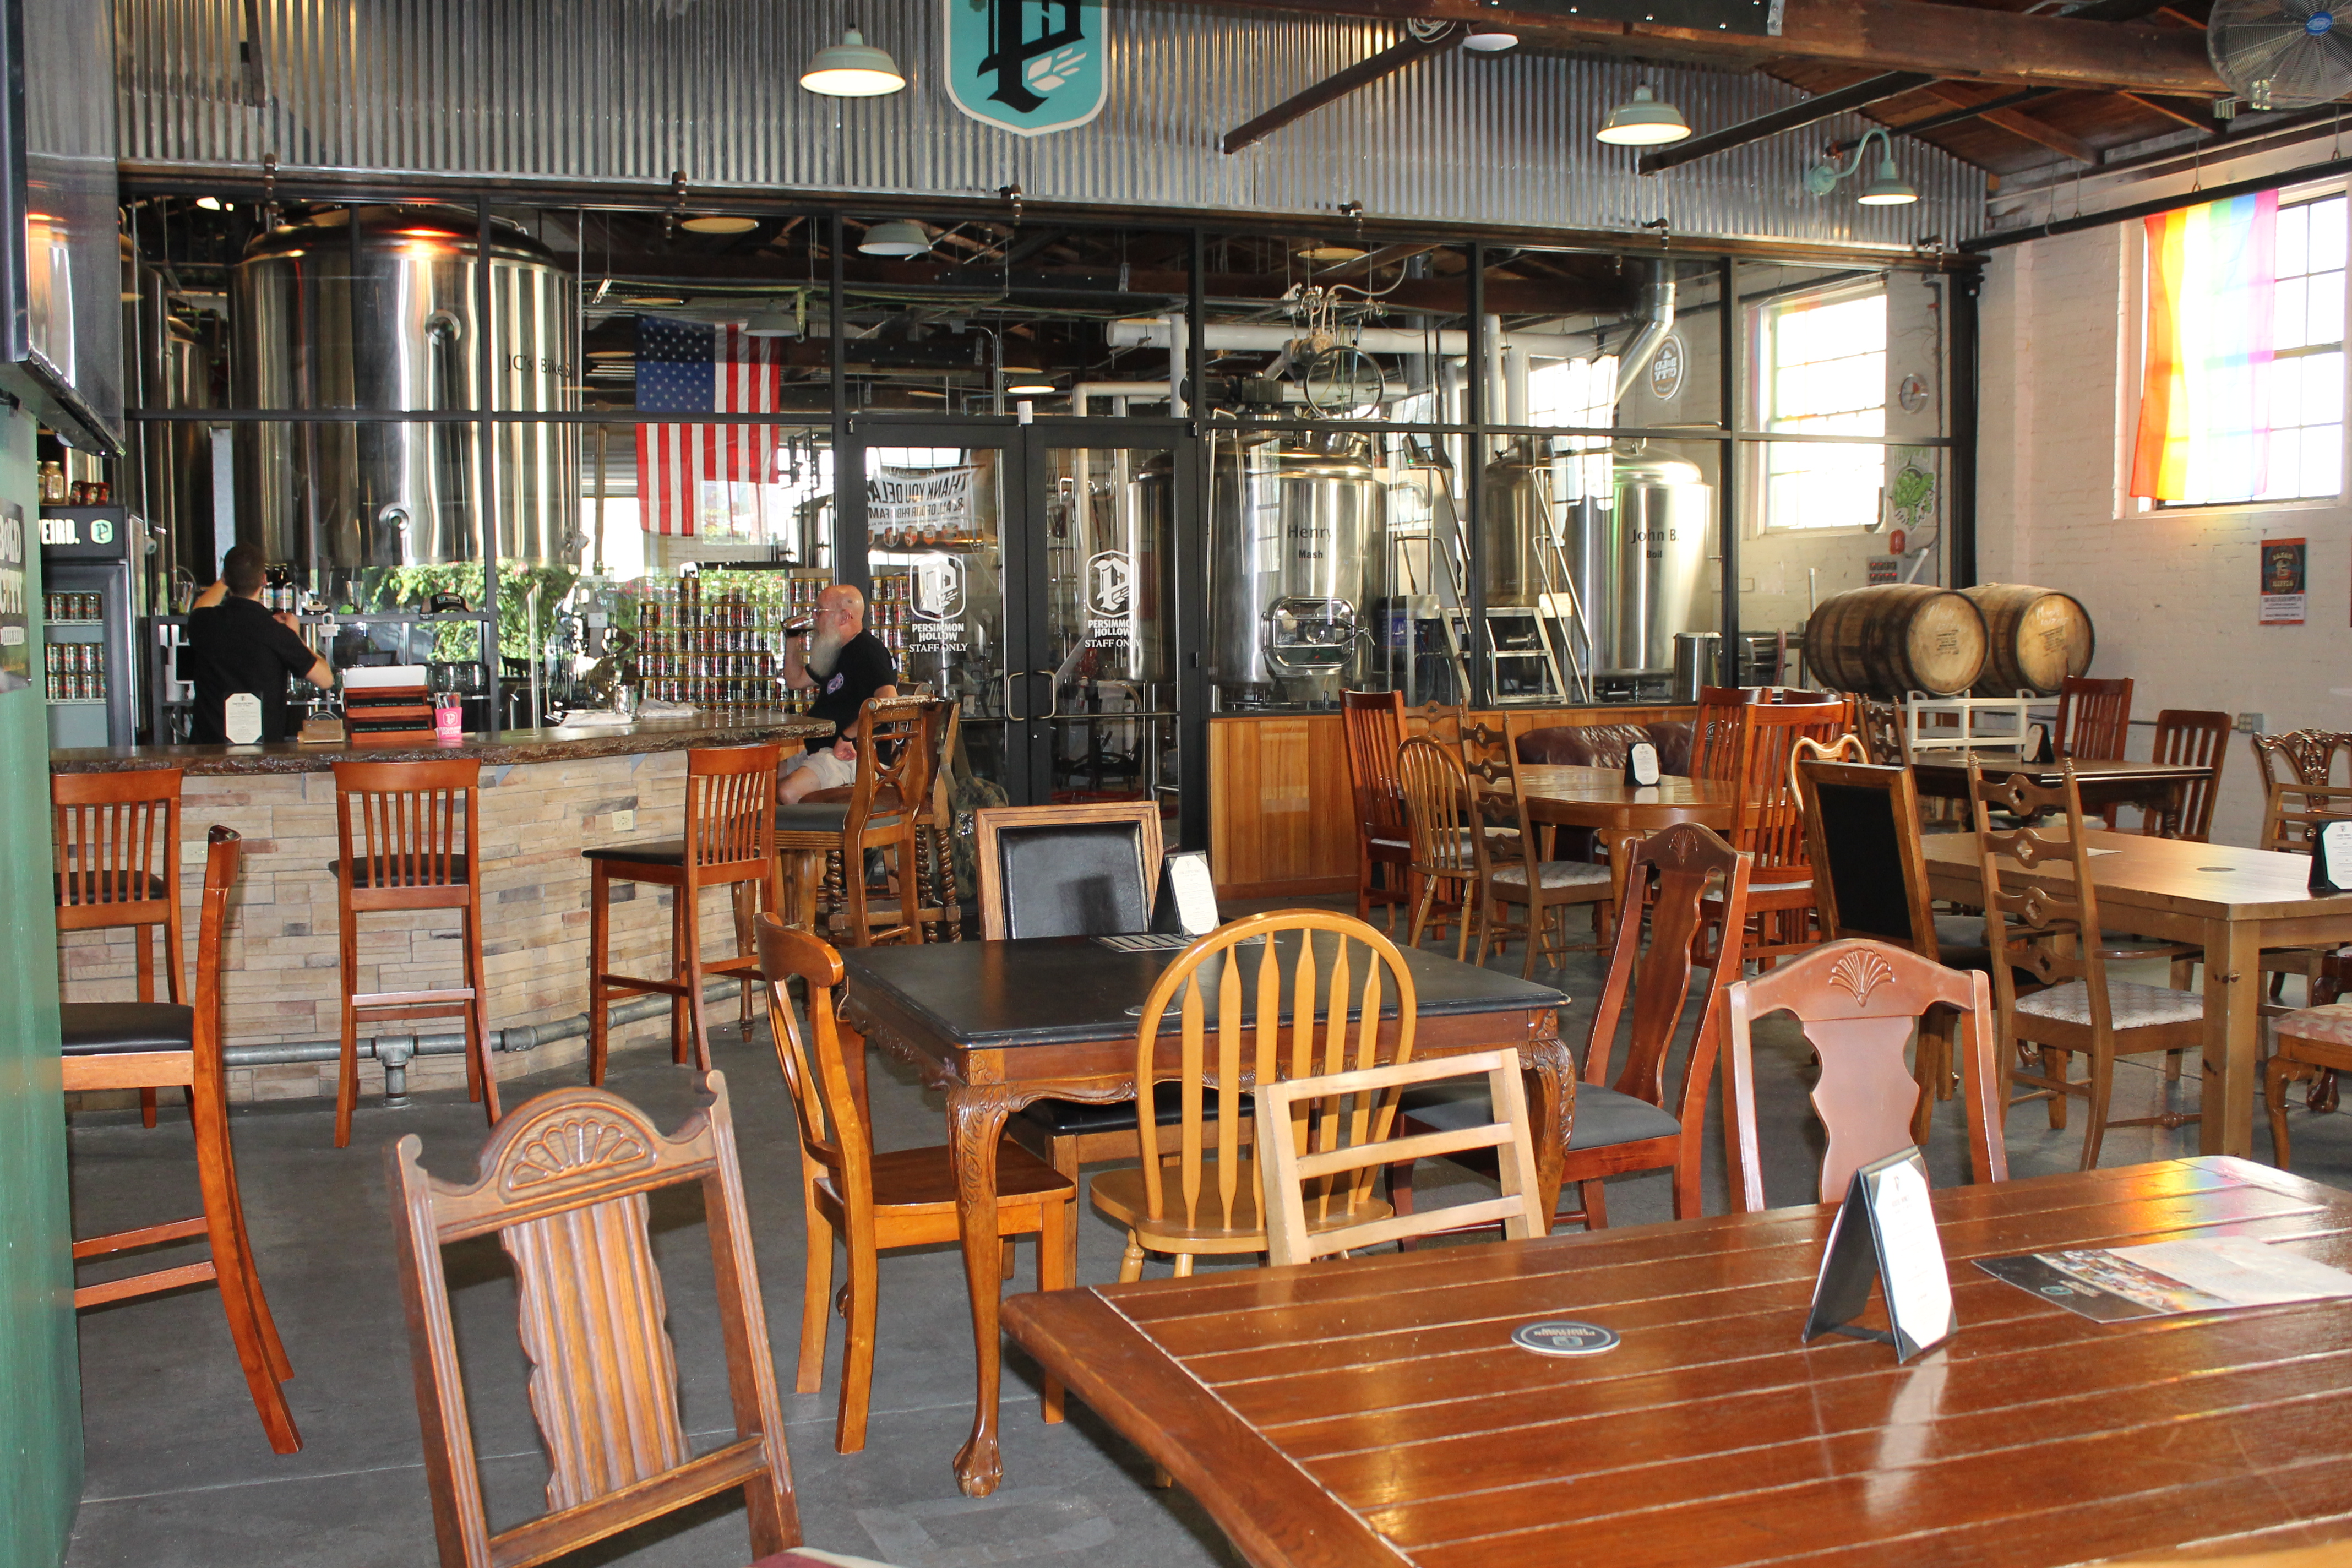 Craft brewery Florida